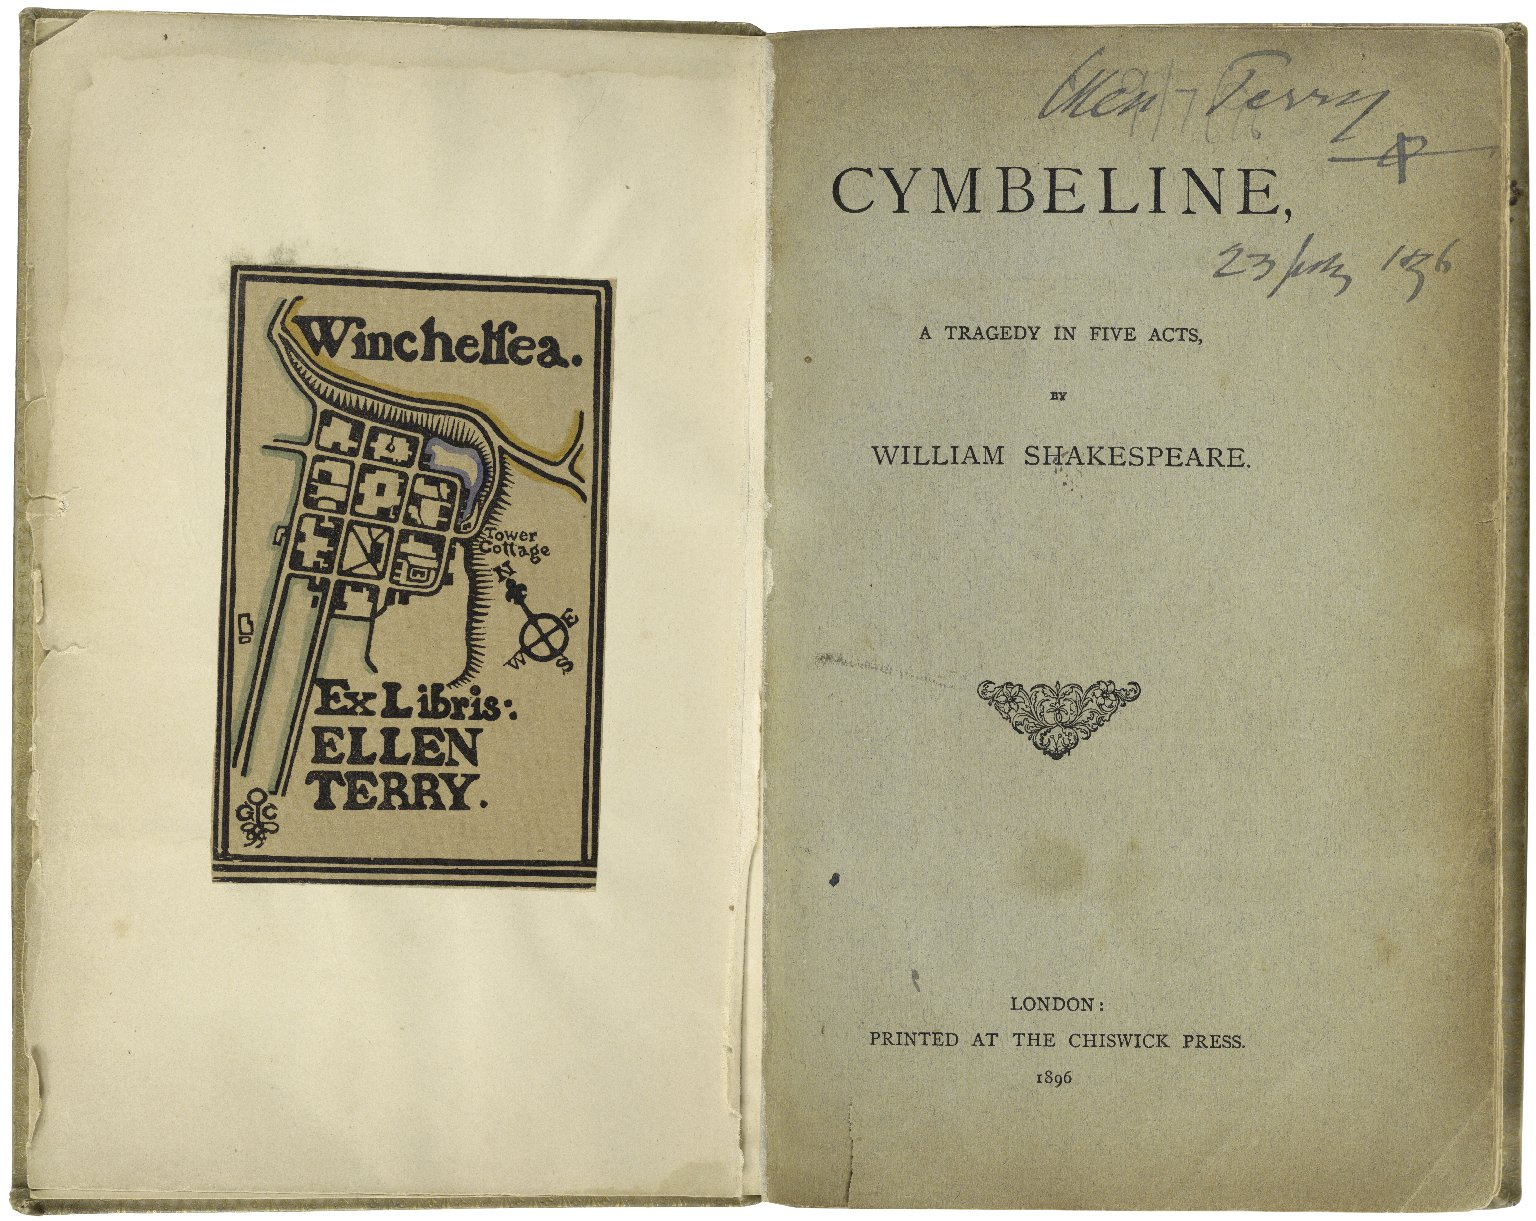 [Cymbeline] Cymbeline : a comedy in five acts / by William Shakespeare ; as arranged for the stage by Henry Irving and presented at the Lyceum Theatre on Tuesday, 22nd September, 1896.